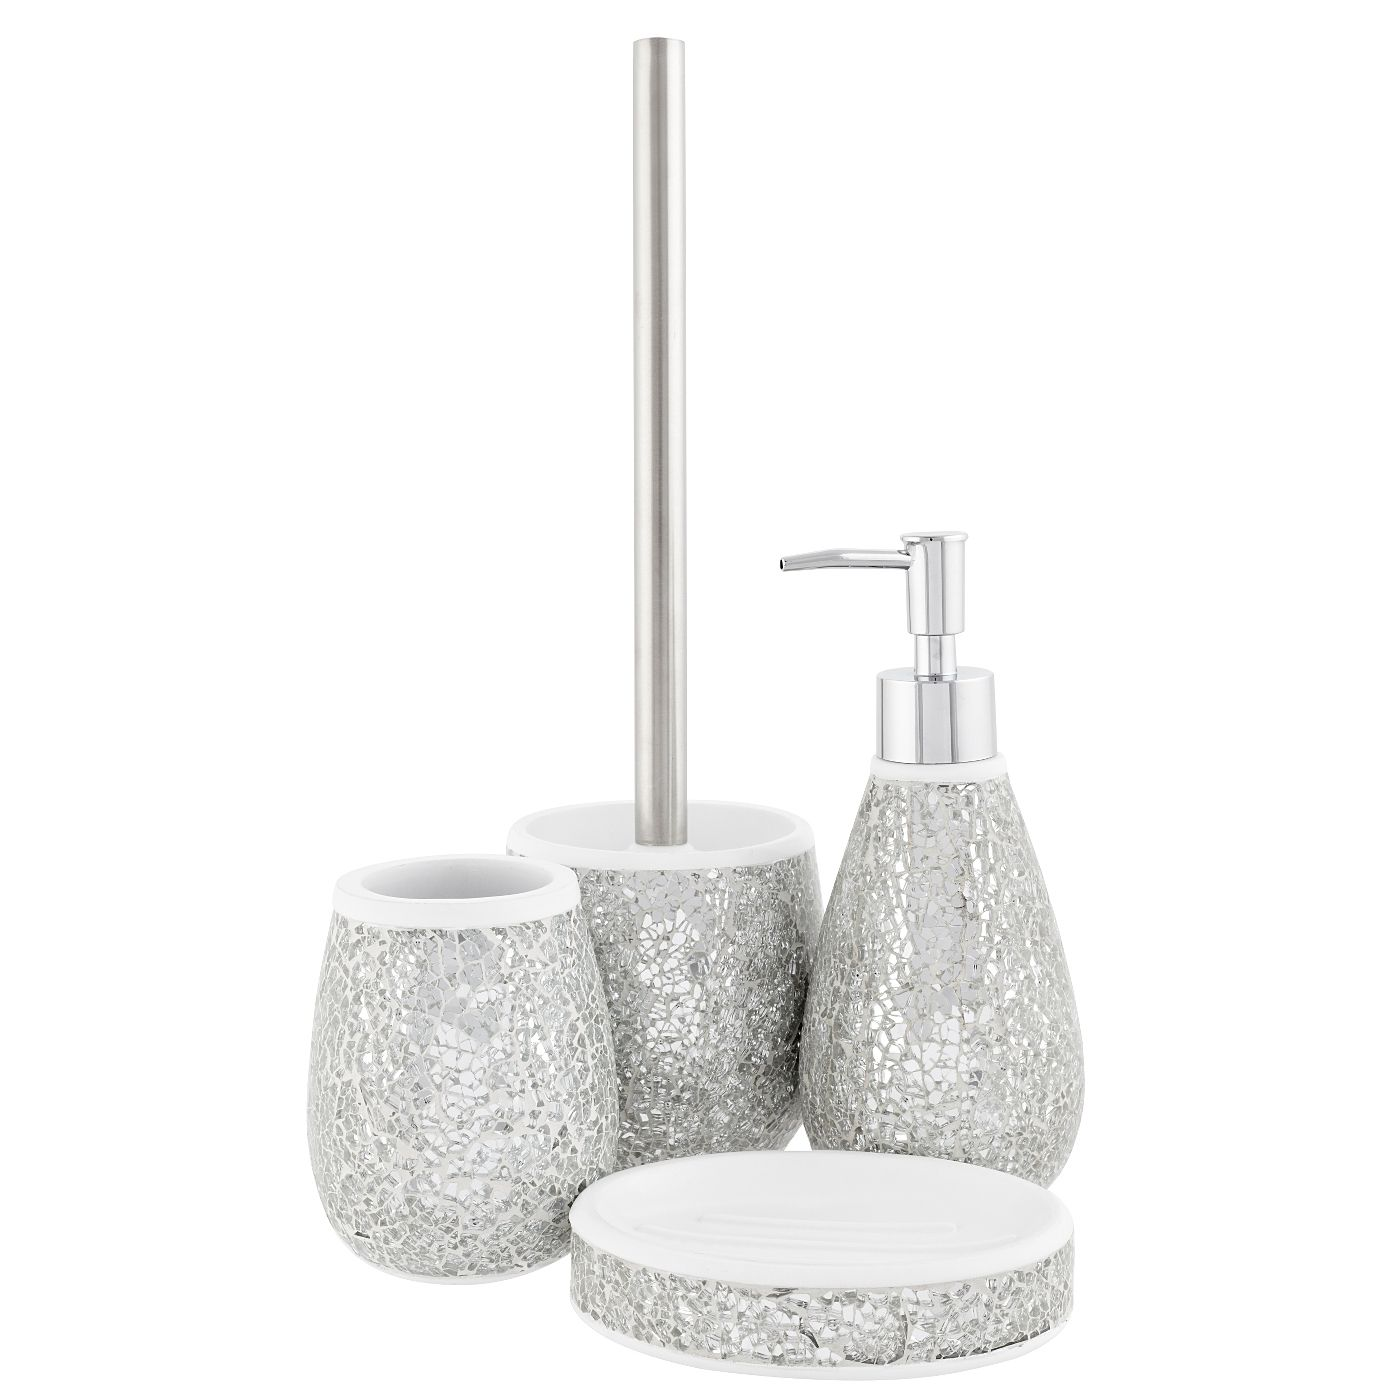 George Home Accessories - Silver Sparkle | Bathroom Accessories ...